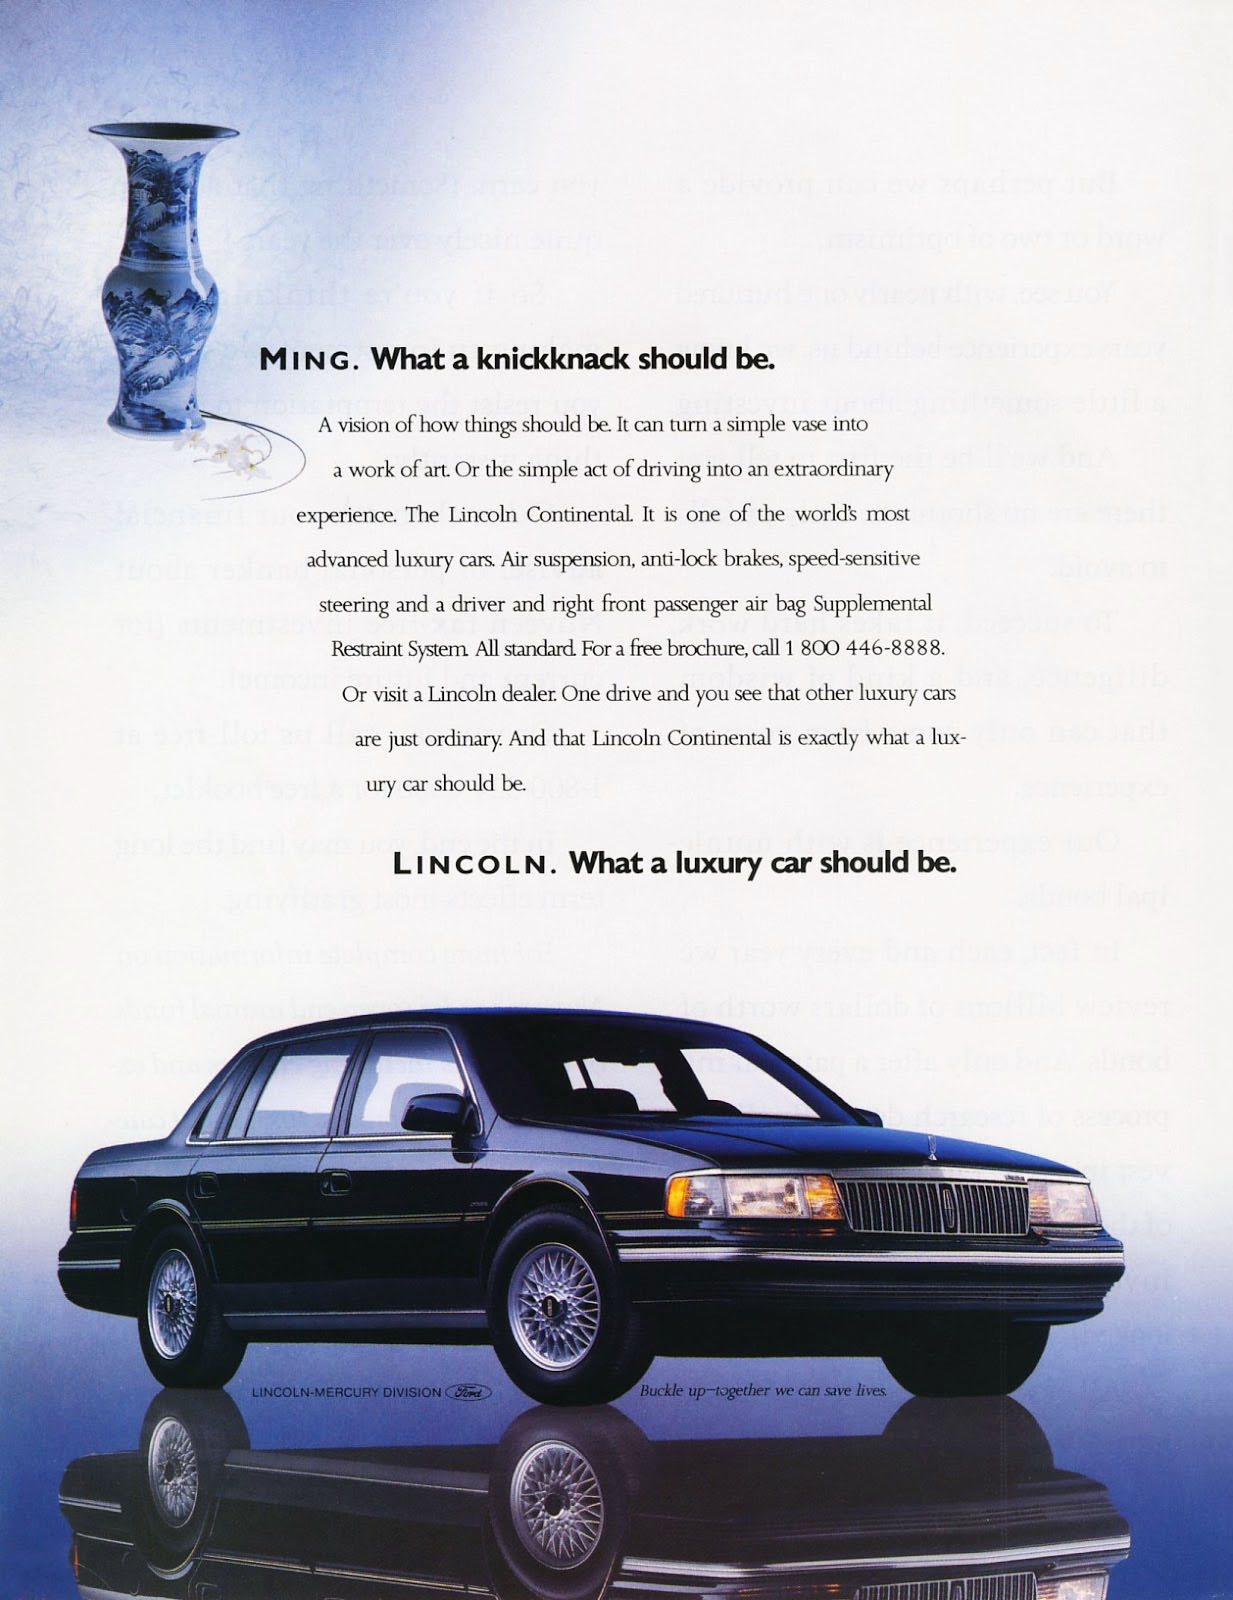 1990 Lincoln Continental Ad